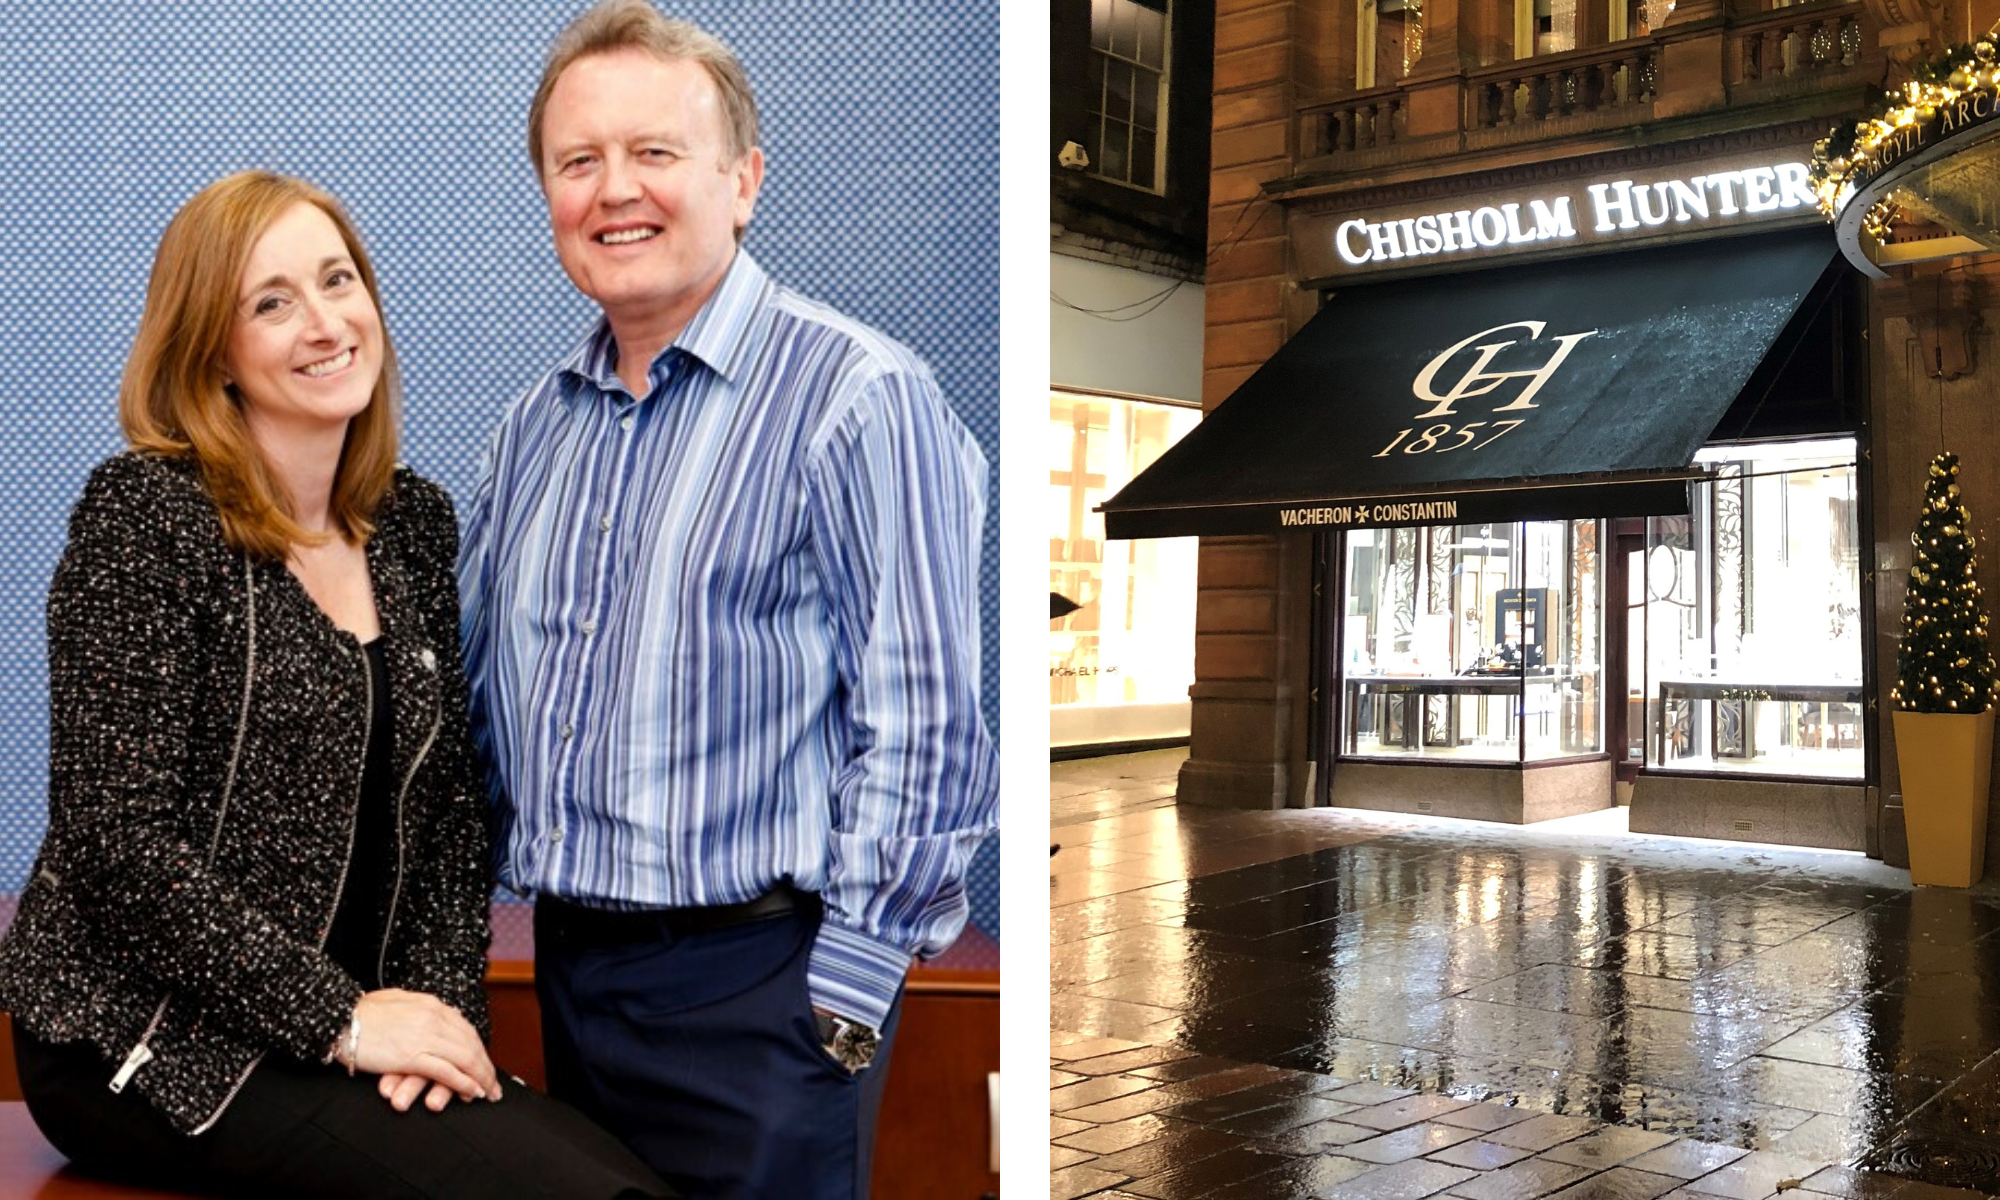 Tracey and Harry Brown are excited to bring a Chisholm Hunter store to Dundee.